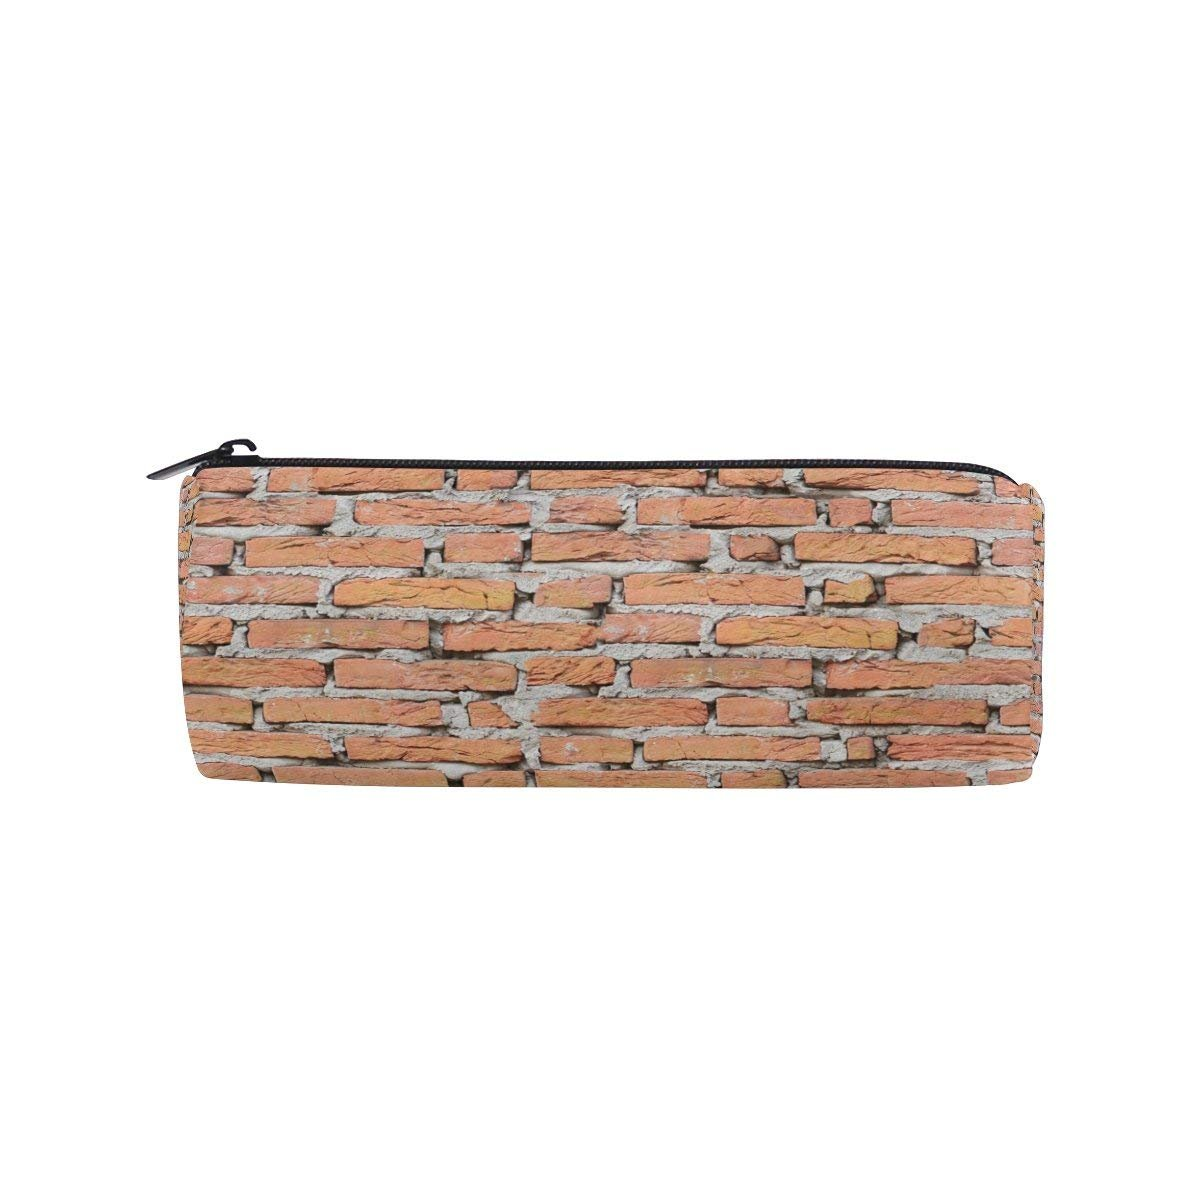 Dragonfly Board Love Round Pencil Case Stationery Bag Zipper Pouch Pencil Holder